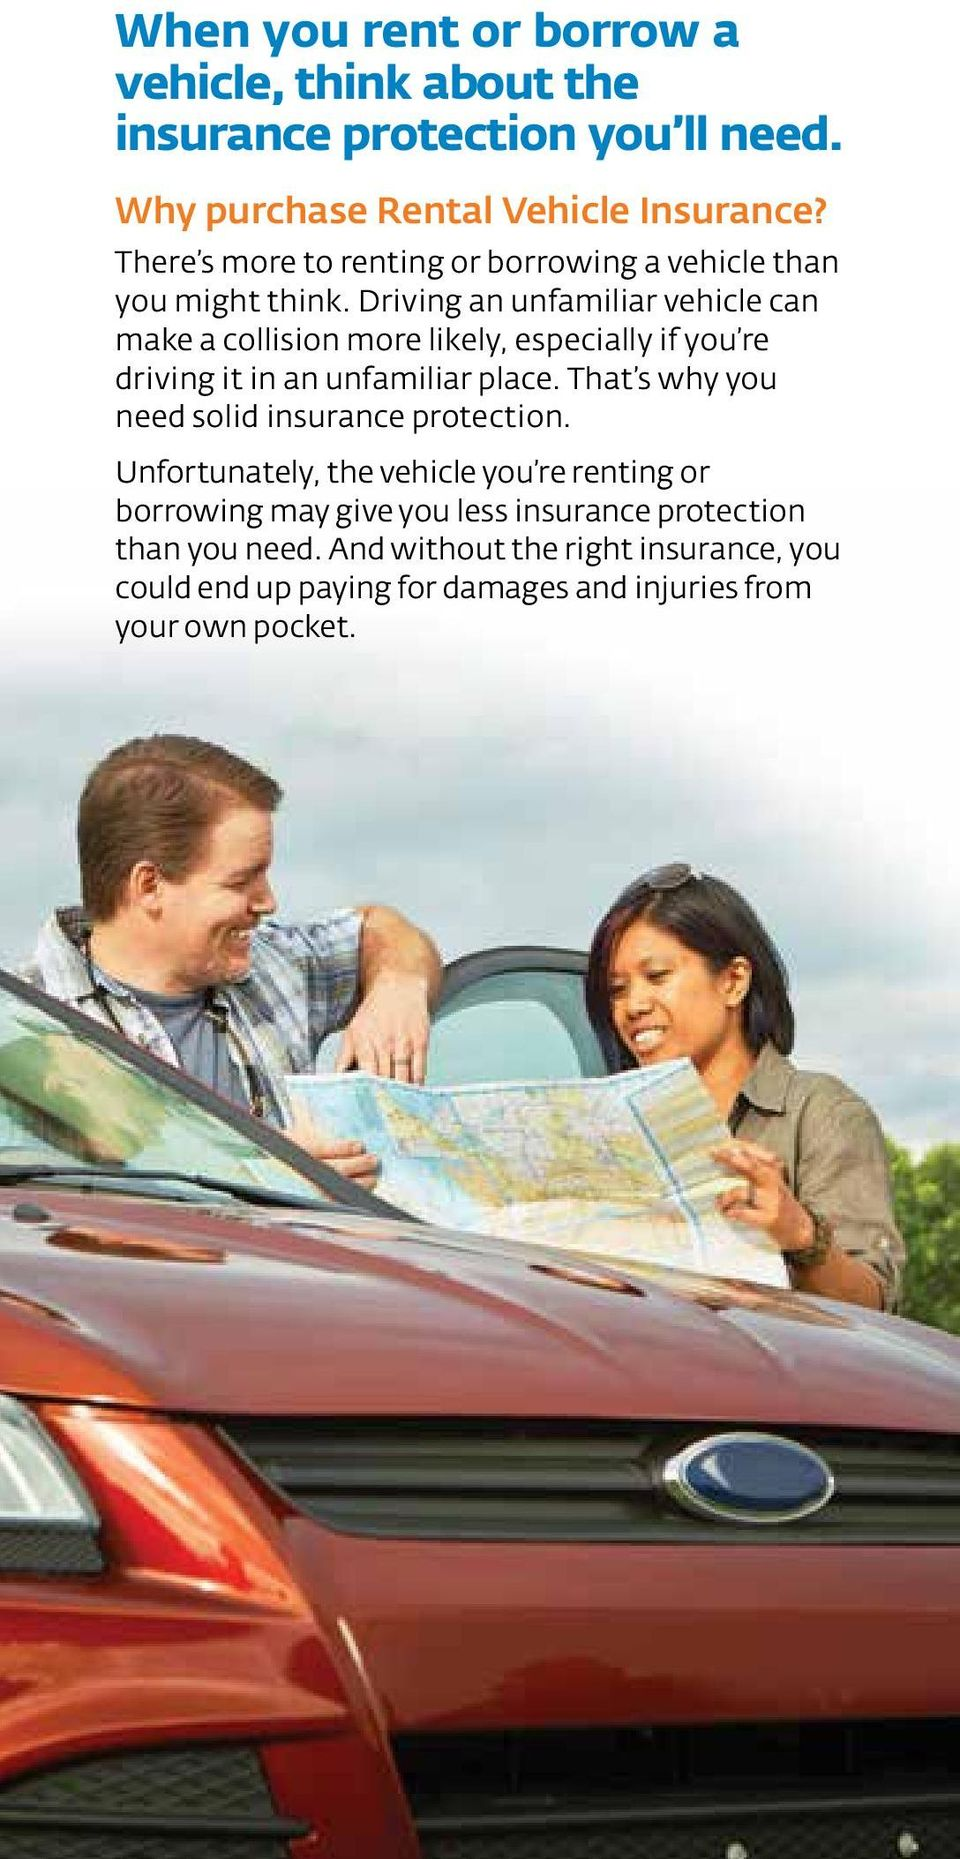 Driving an unfamiliar vehicle can make a collision more likely, especially if you re driving it in an unfamiliar place.